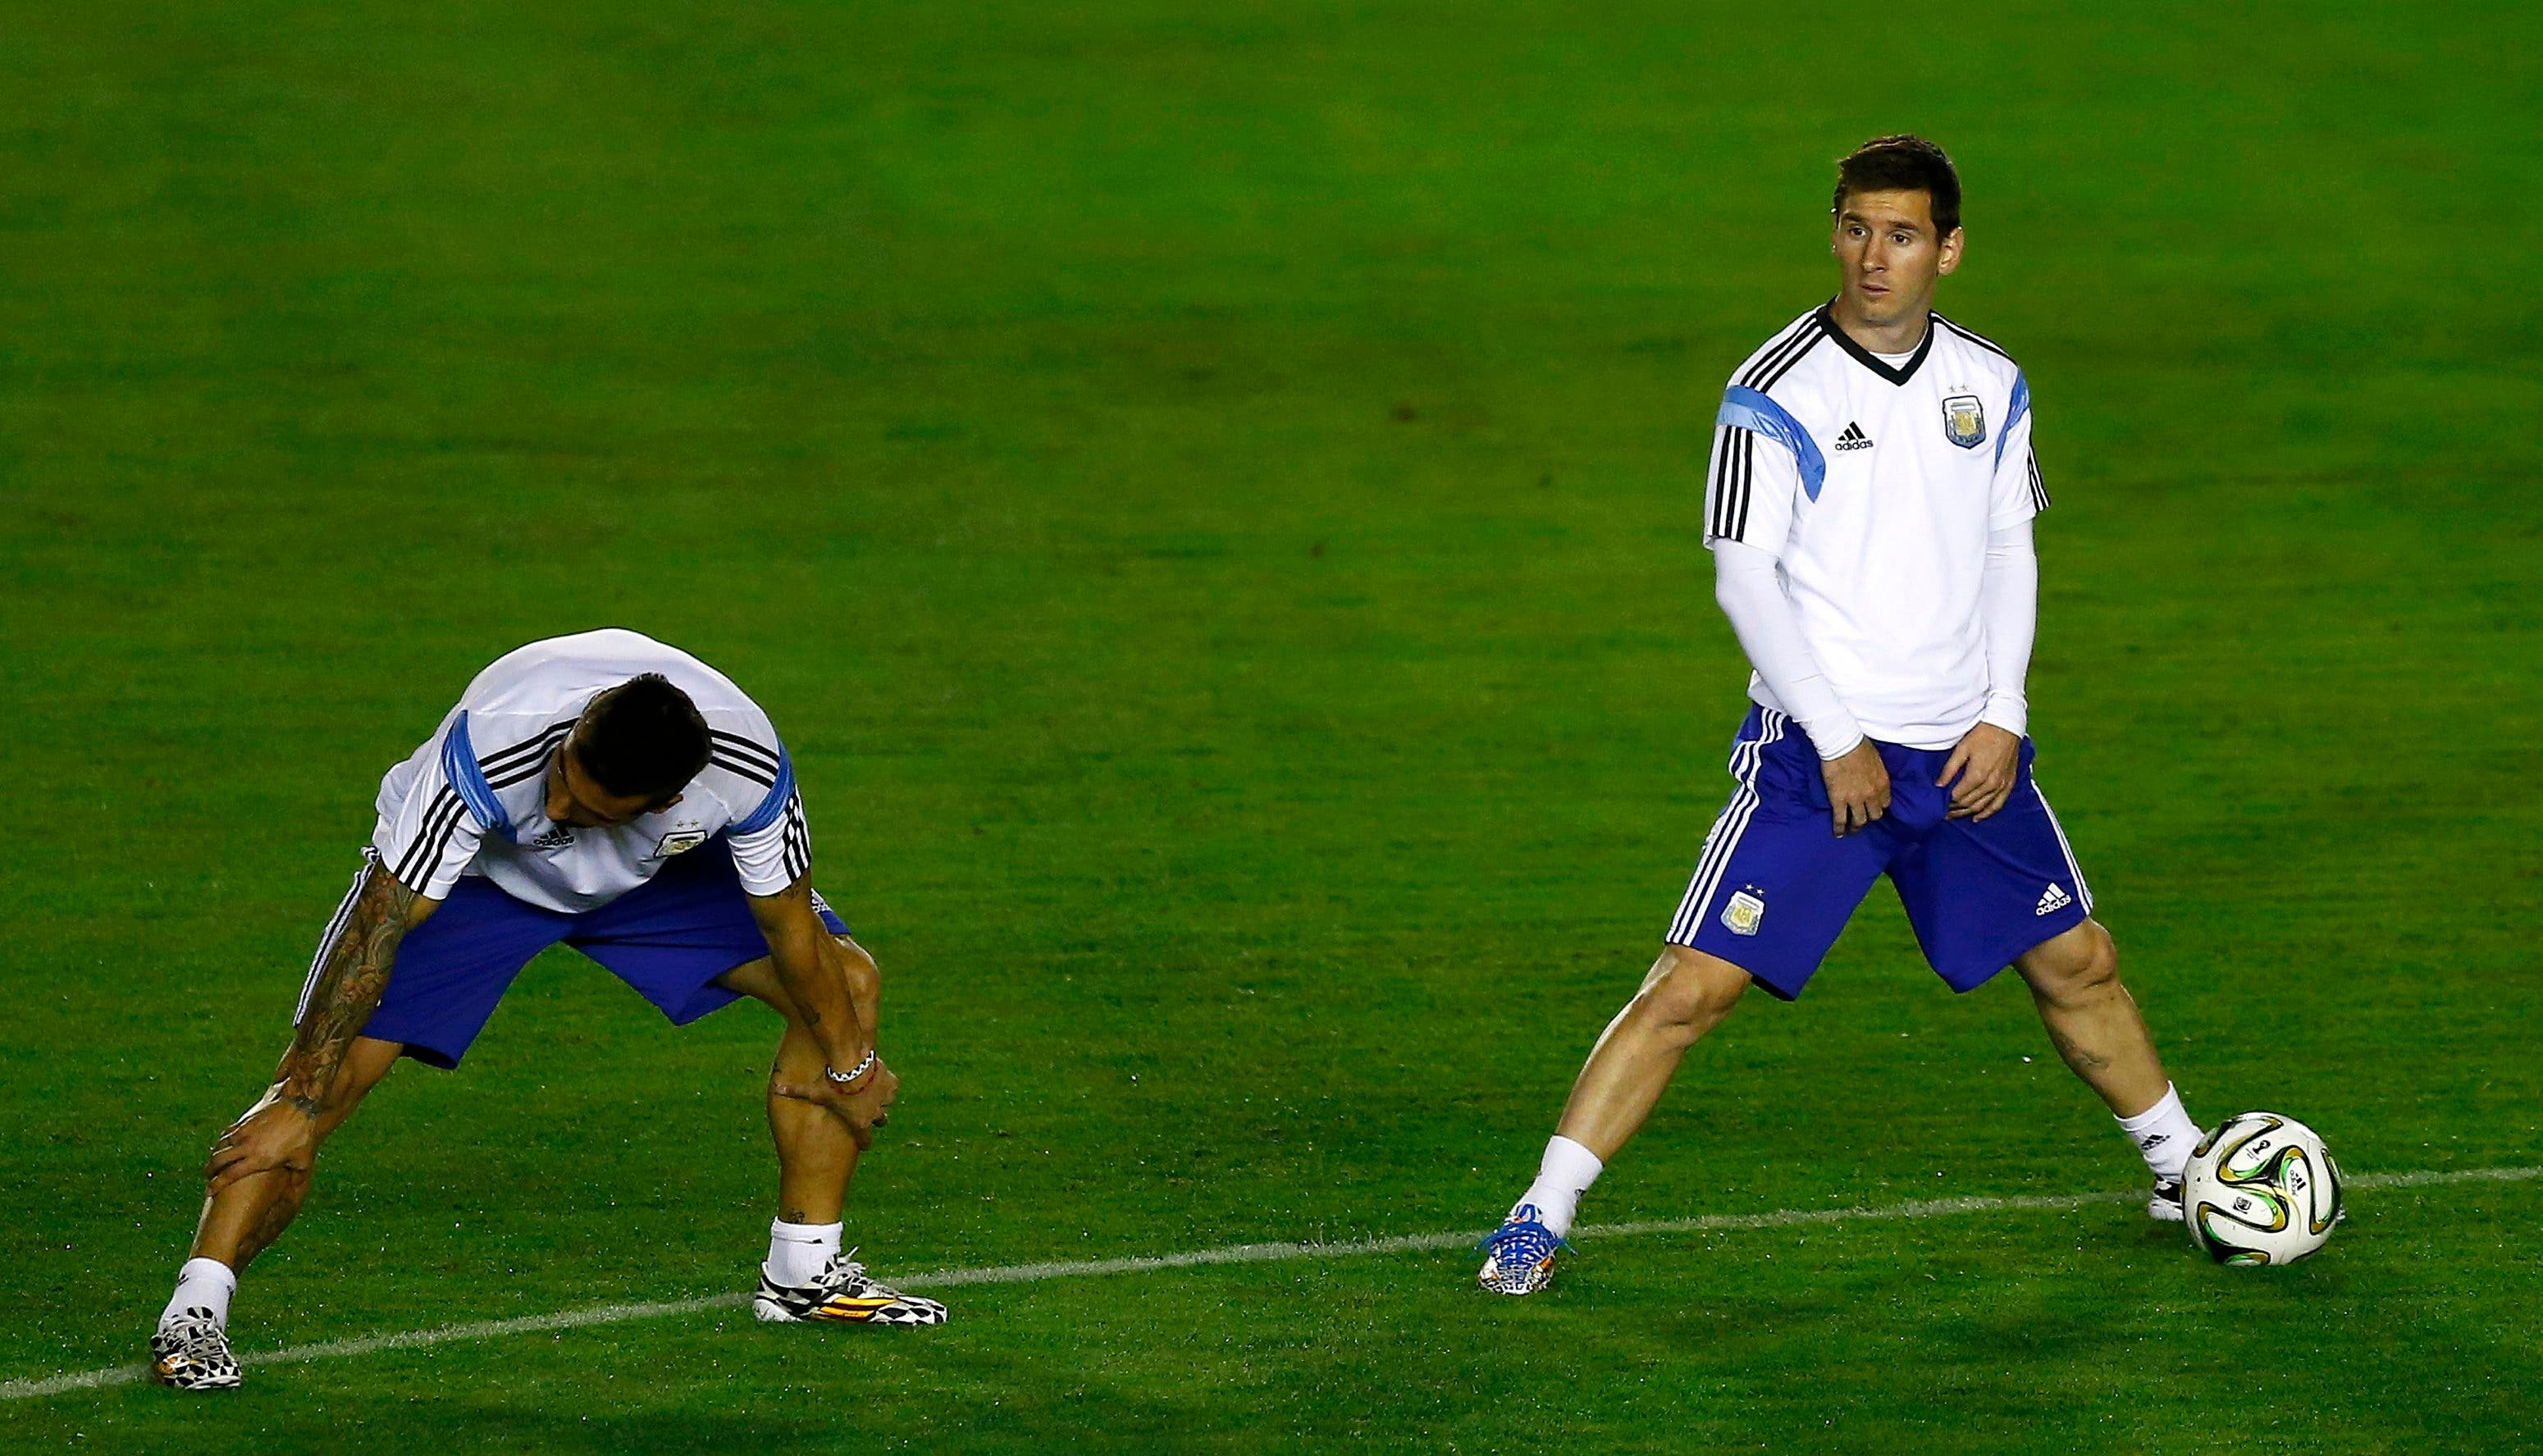 Argentina's national soccer team player Lionel Messi (R) stretches with teammates during a training session in Rio de Janeiro July 12, 2014. (Reuters)